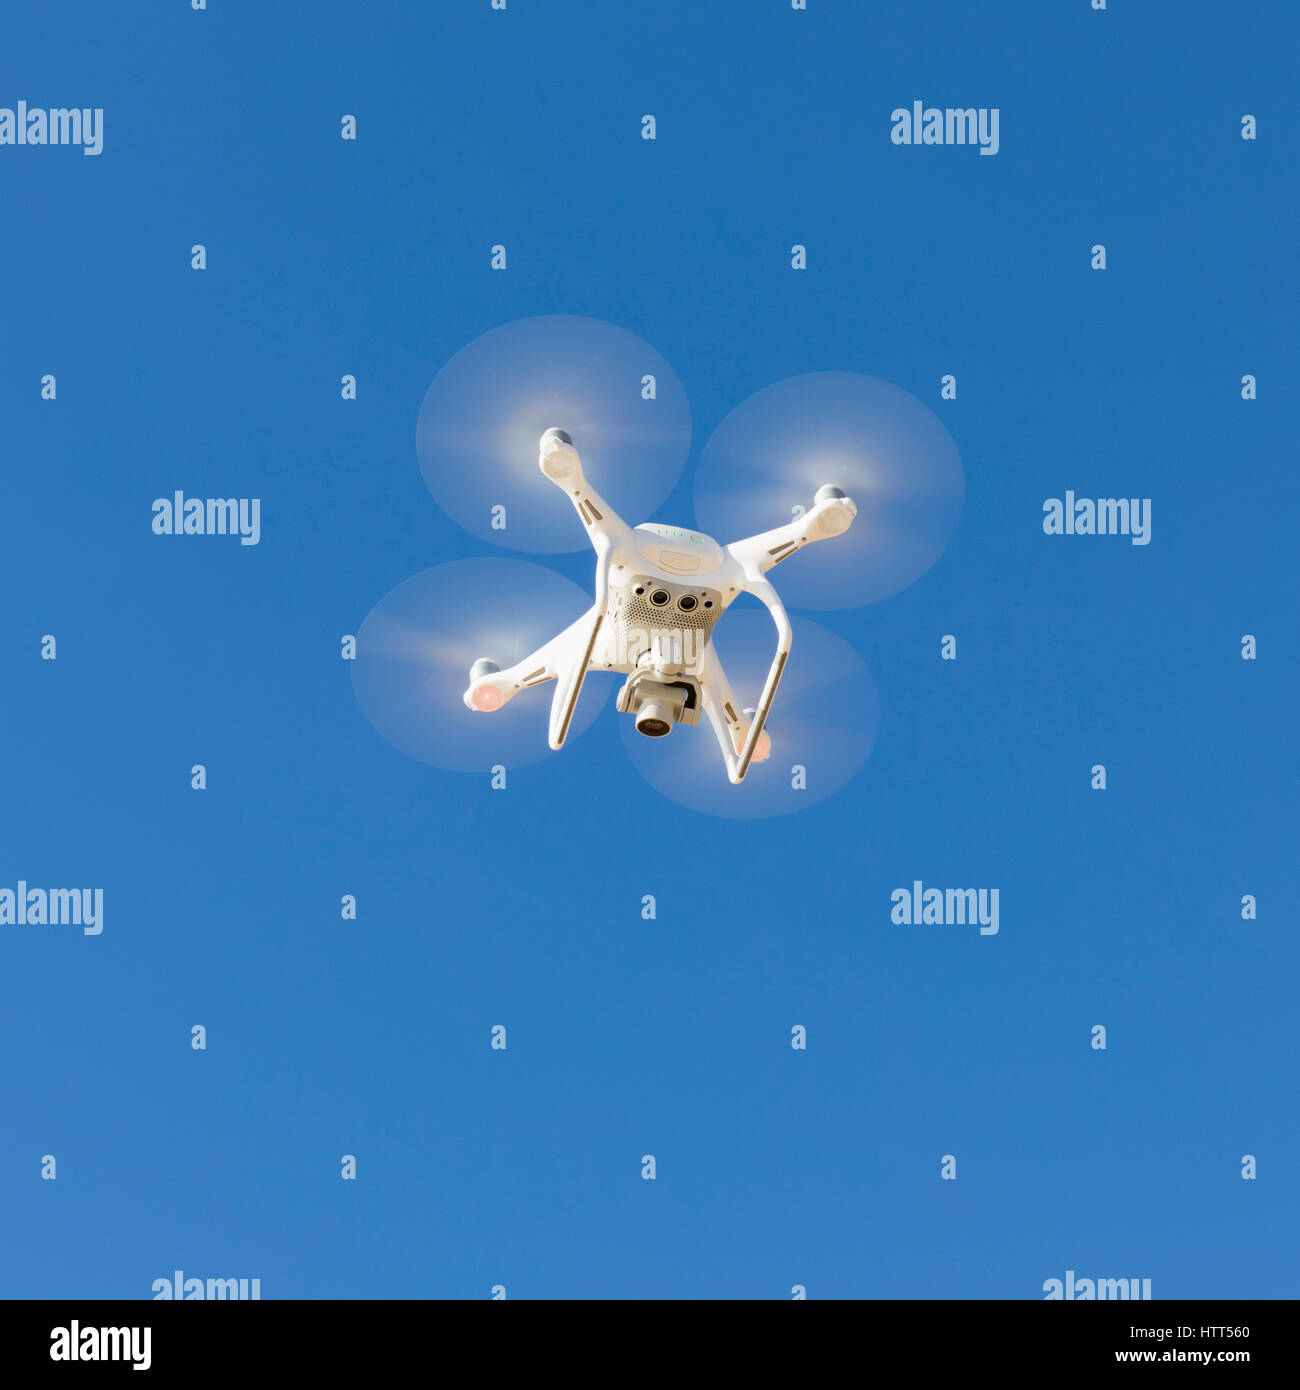 DJI Phantom 4 drone with camera in flight. - Stock Image